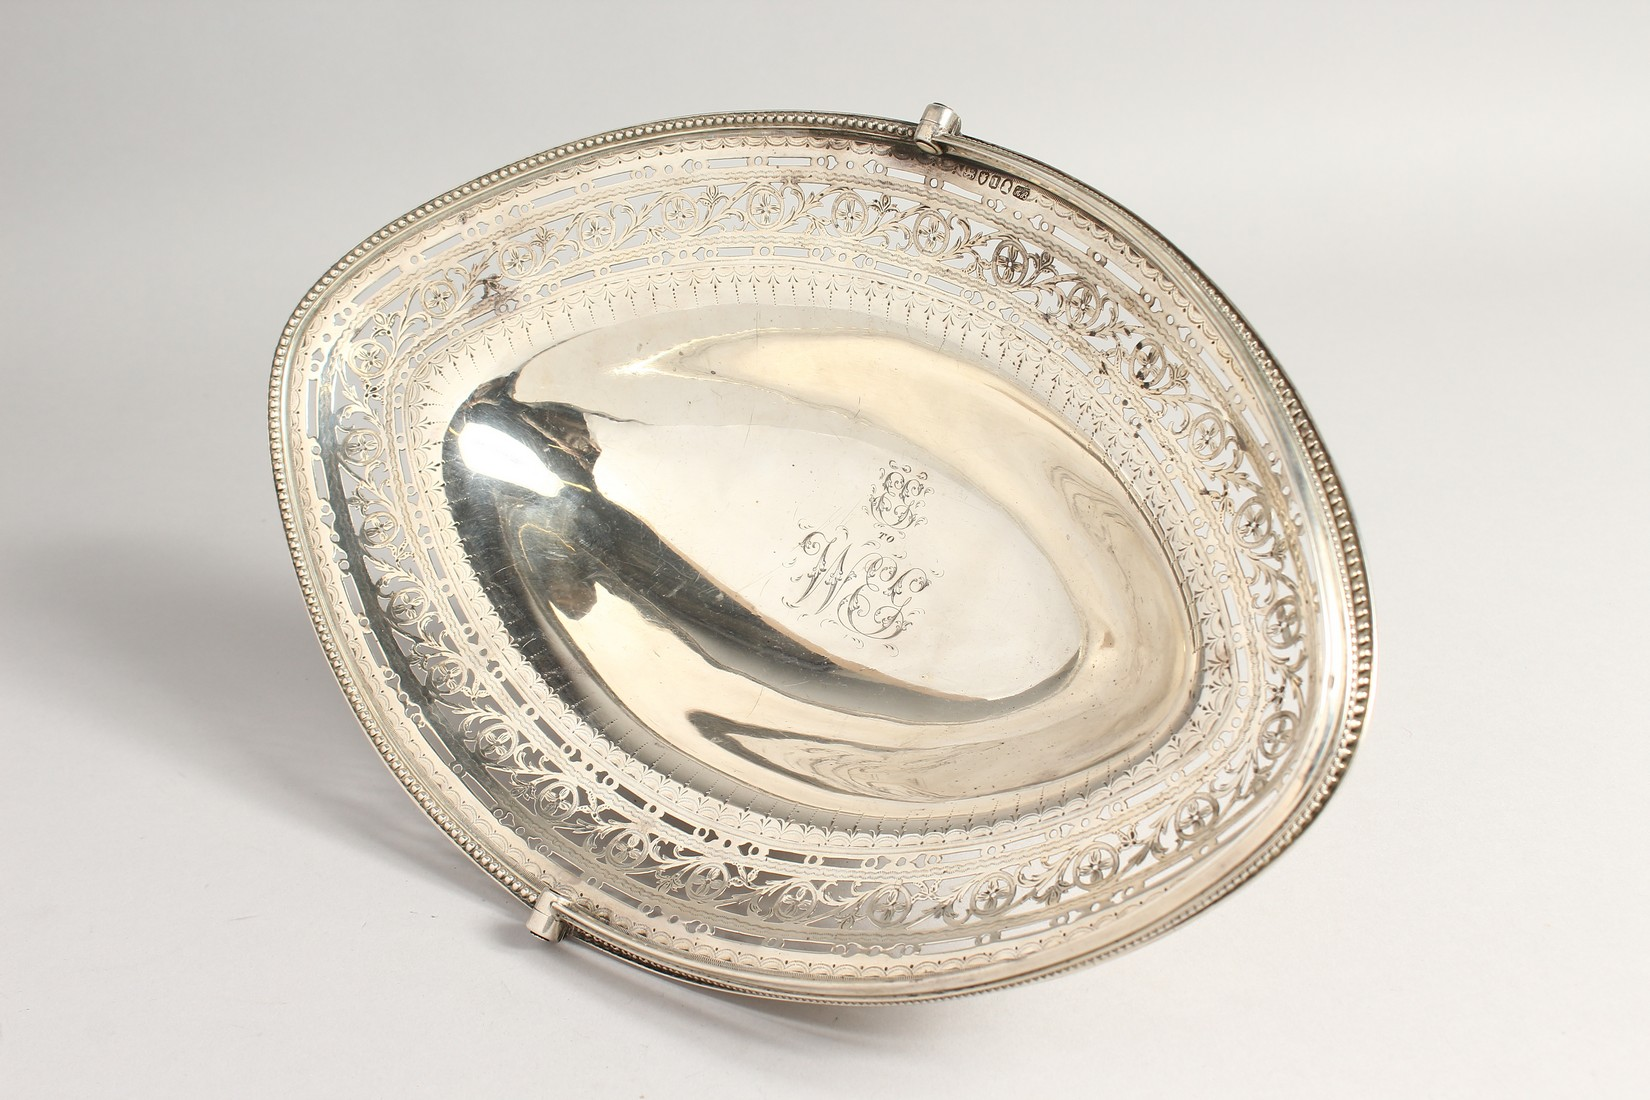 A FINE GEORGE III SILVER CAKE BASKET by HESTER BATEMAN with bead edges and swing handles. London - Image 2 of 5